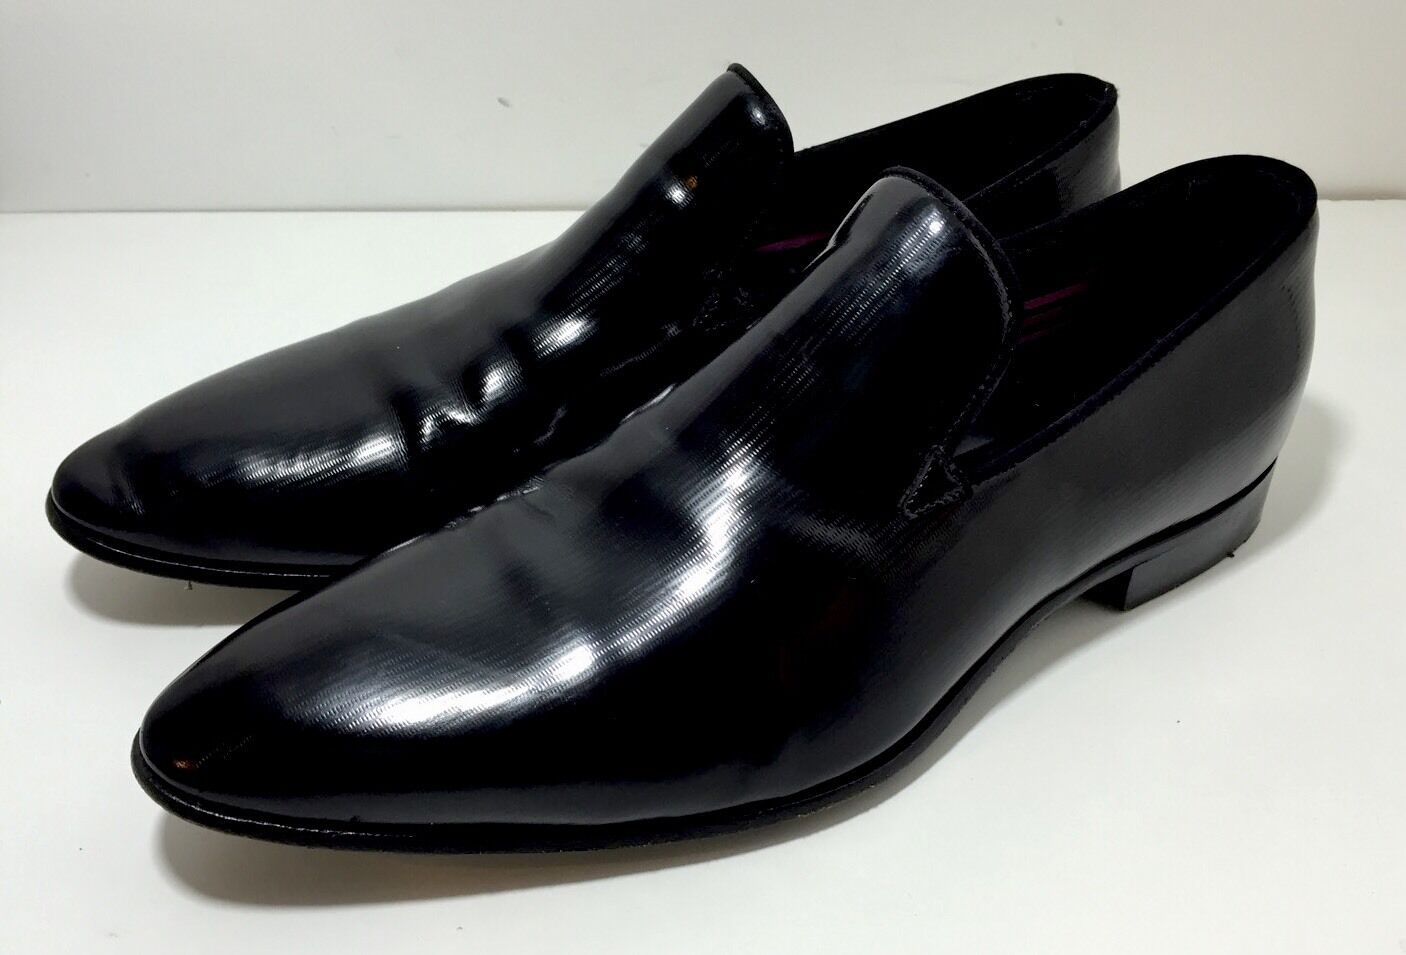 HUGO BOSS Black High Gloss Patent Leather Loafers Slip On Shoes 6.5 / 40.5